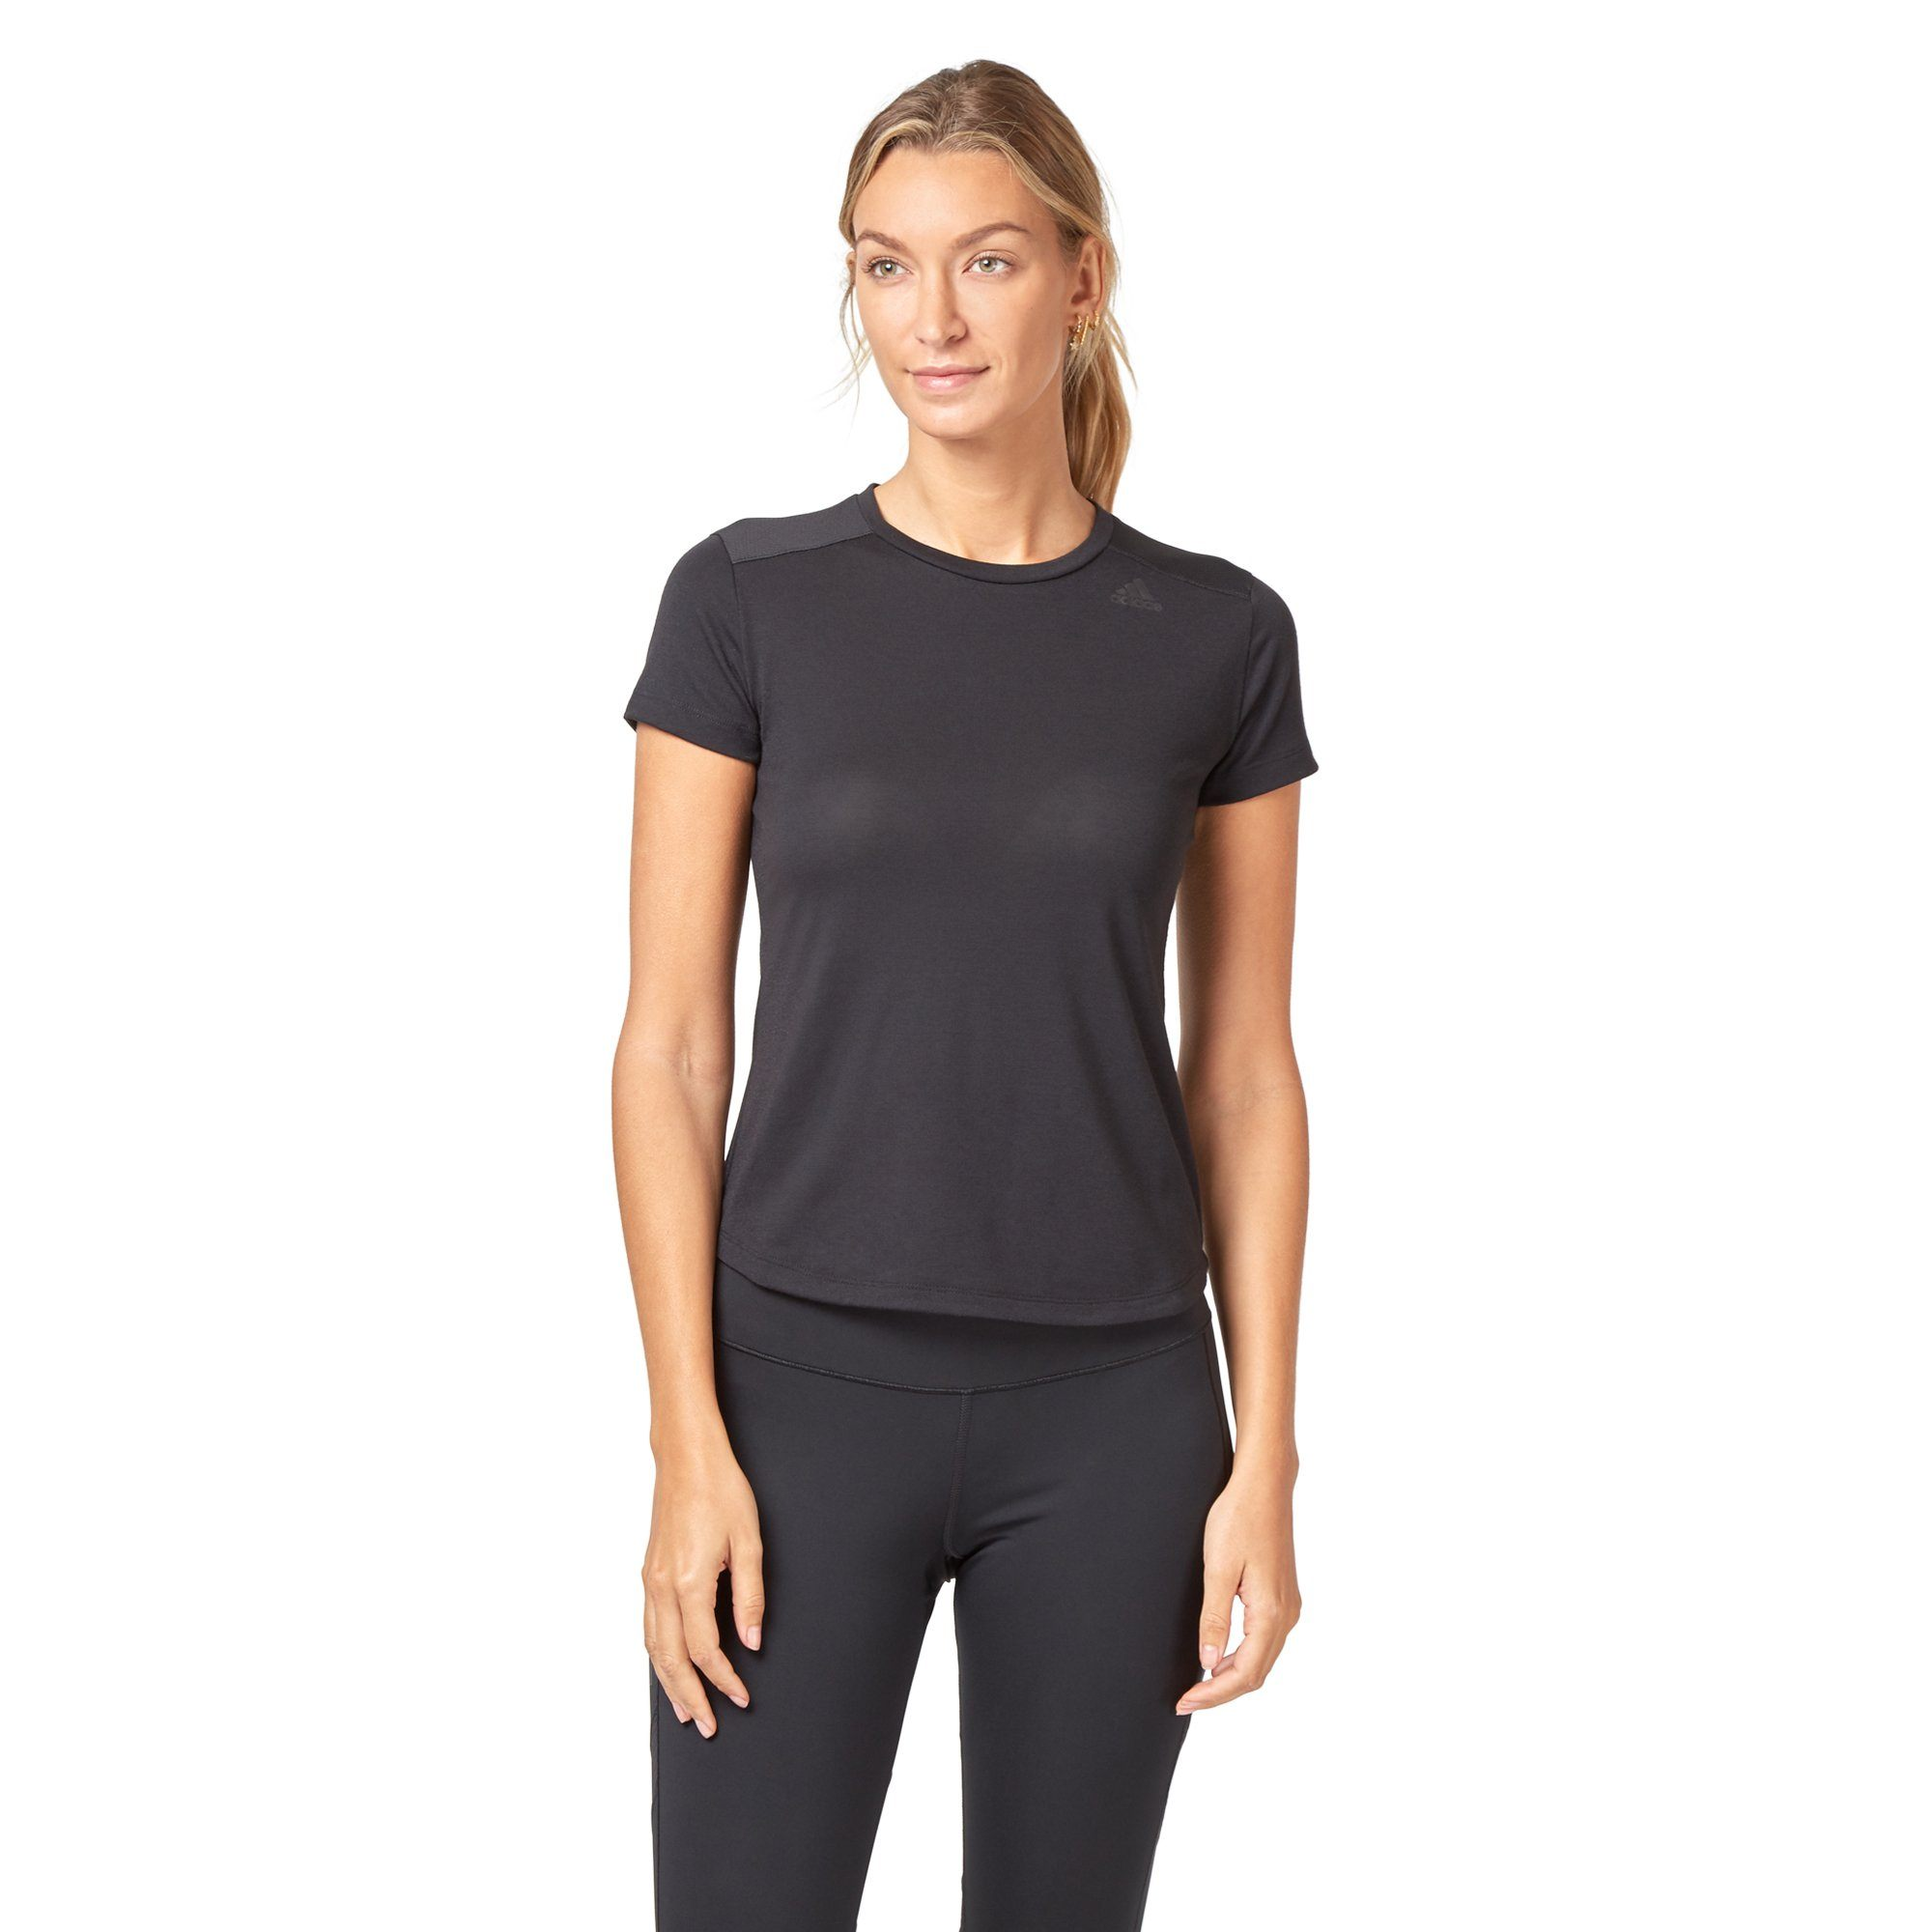 Adidas Women's Prime Mix Tee - Black SportsPower Geelong  (2012420374587)